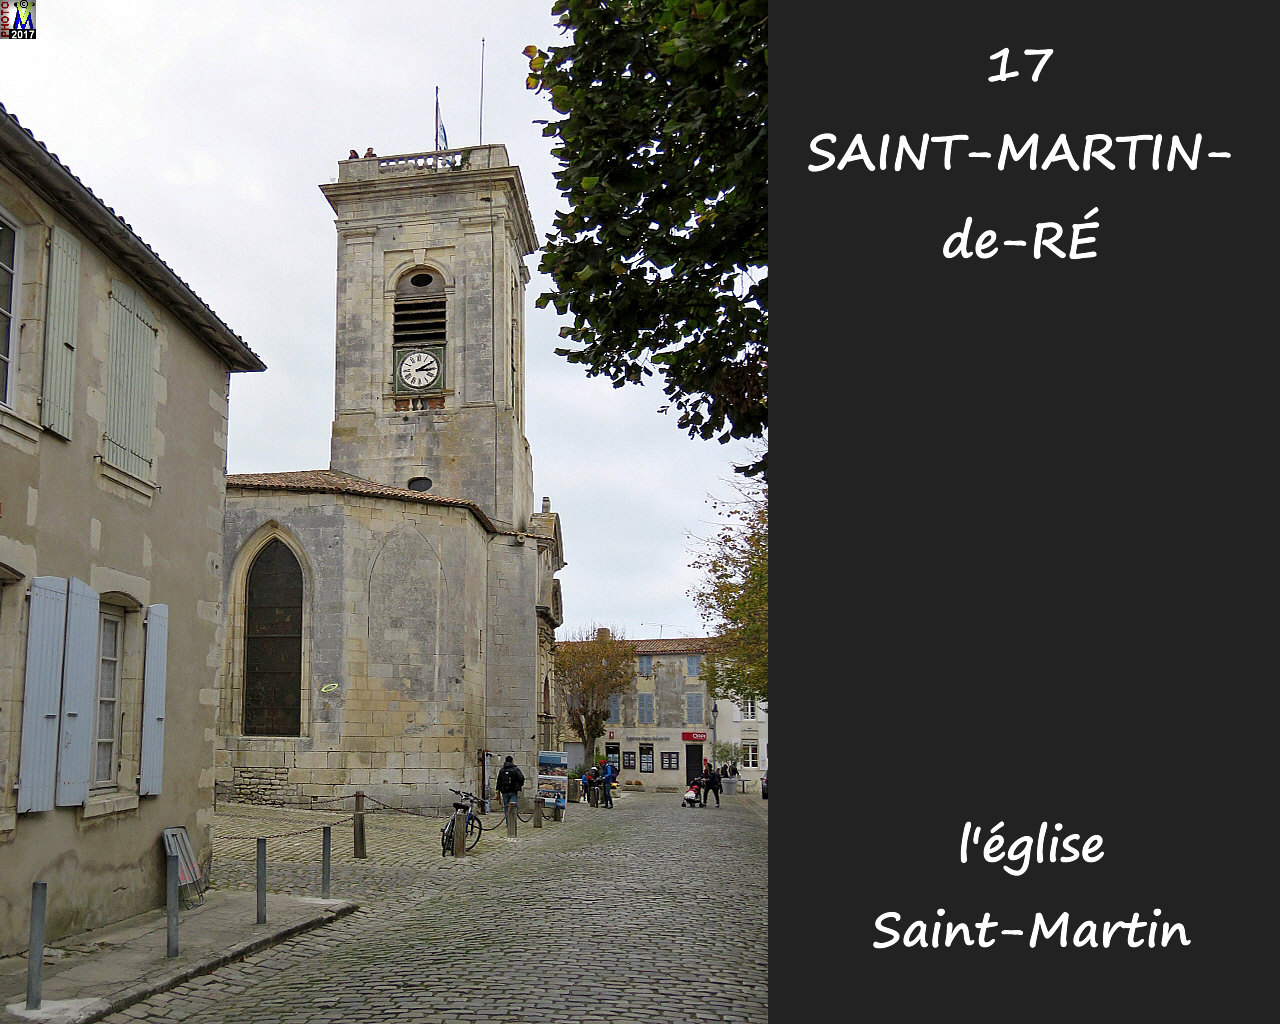 17StMARTIN-RE_eglise_1004.jpg